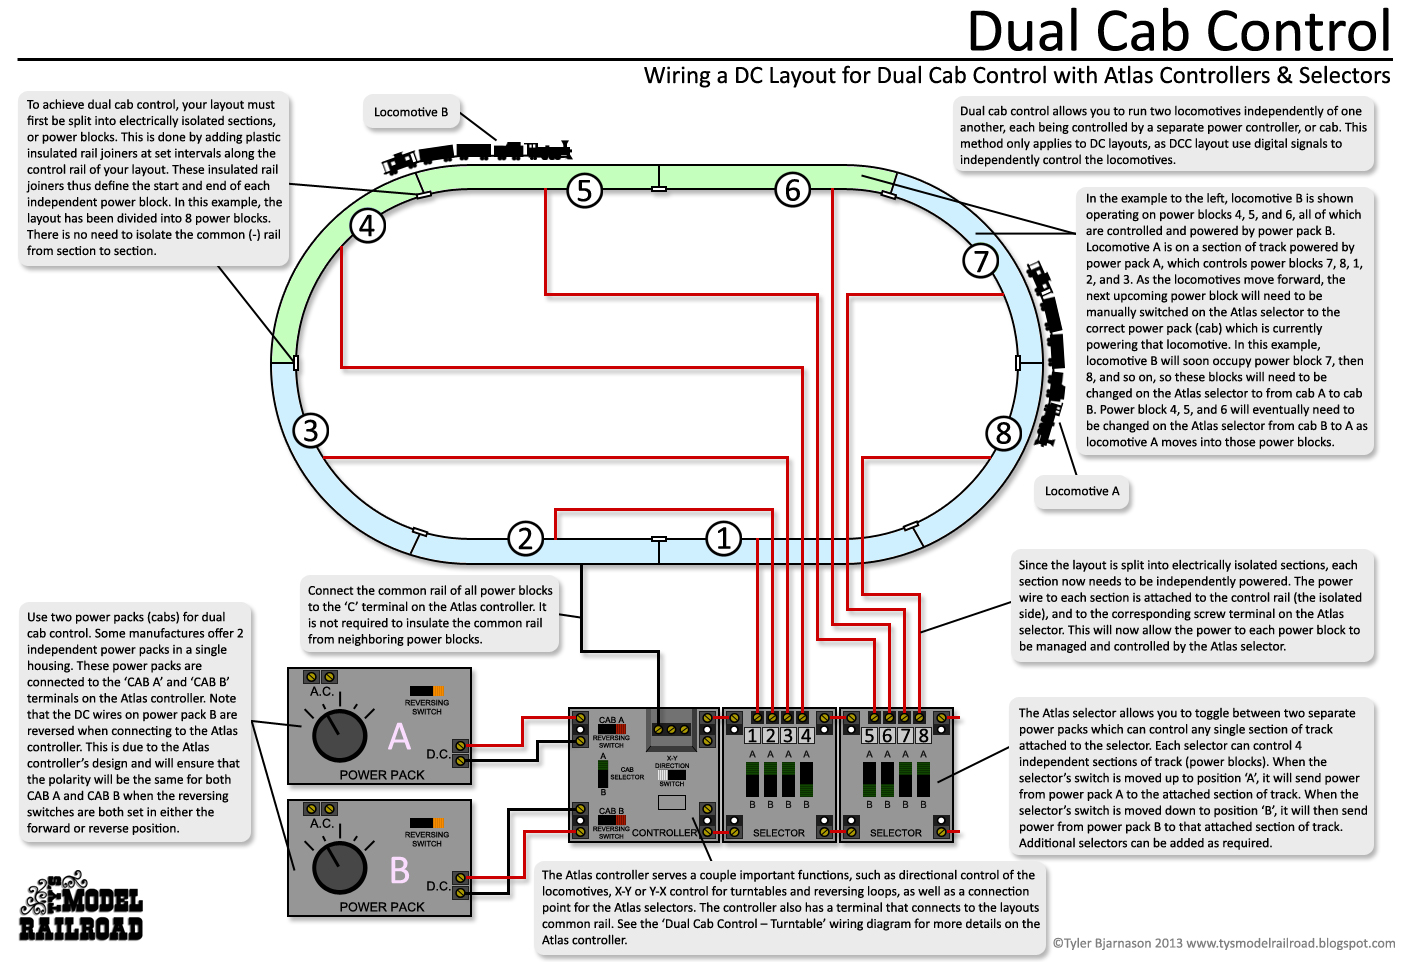 small resolution of how to wire a layout for dual cab control using an atlas controller and selectors